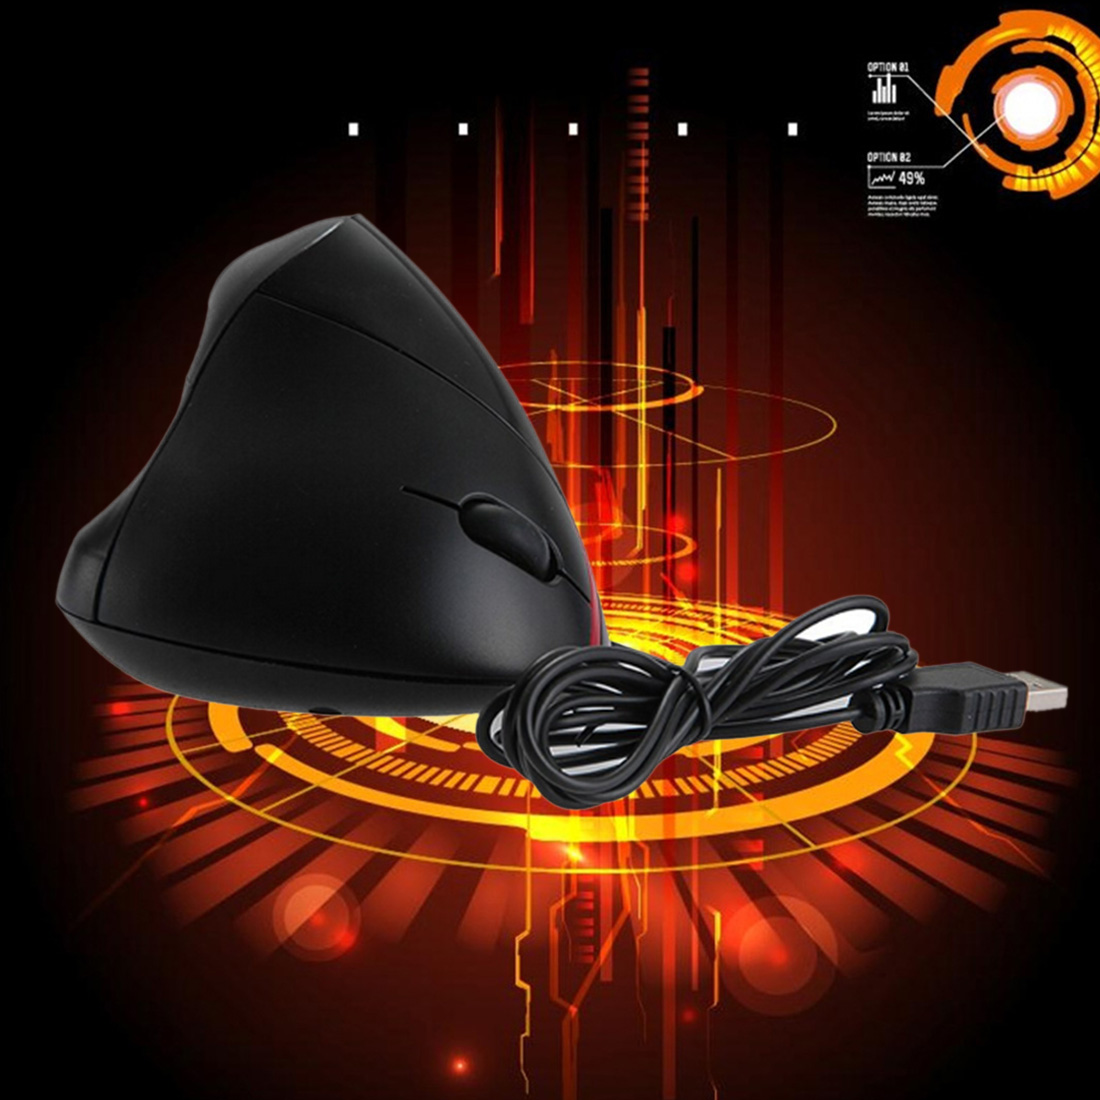 2016 Rechargeable Wireless Vertical Mouse Ergonomic 4 Buttons 2.4G 1000DPI 10M Optical Mice For Laptop Desktop PC(China (Mainland))